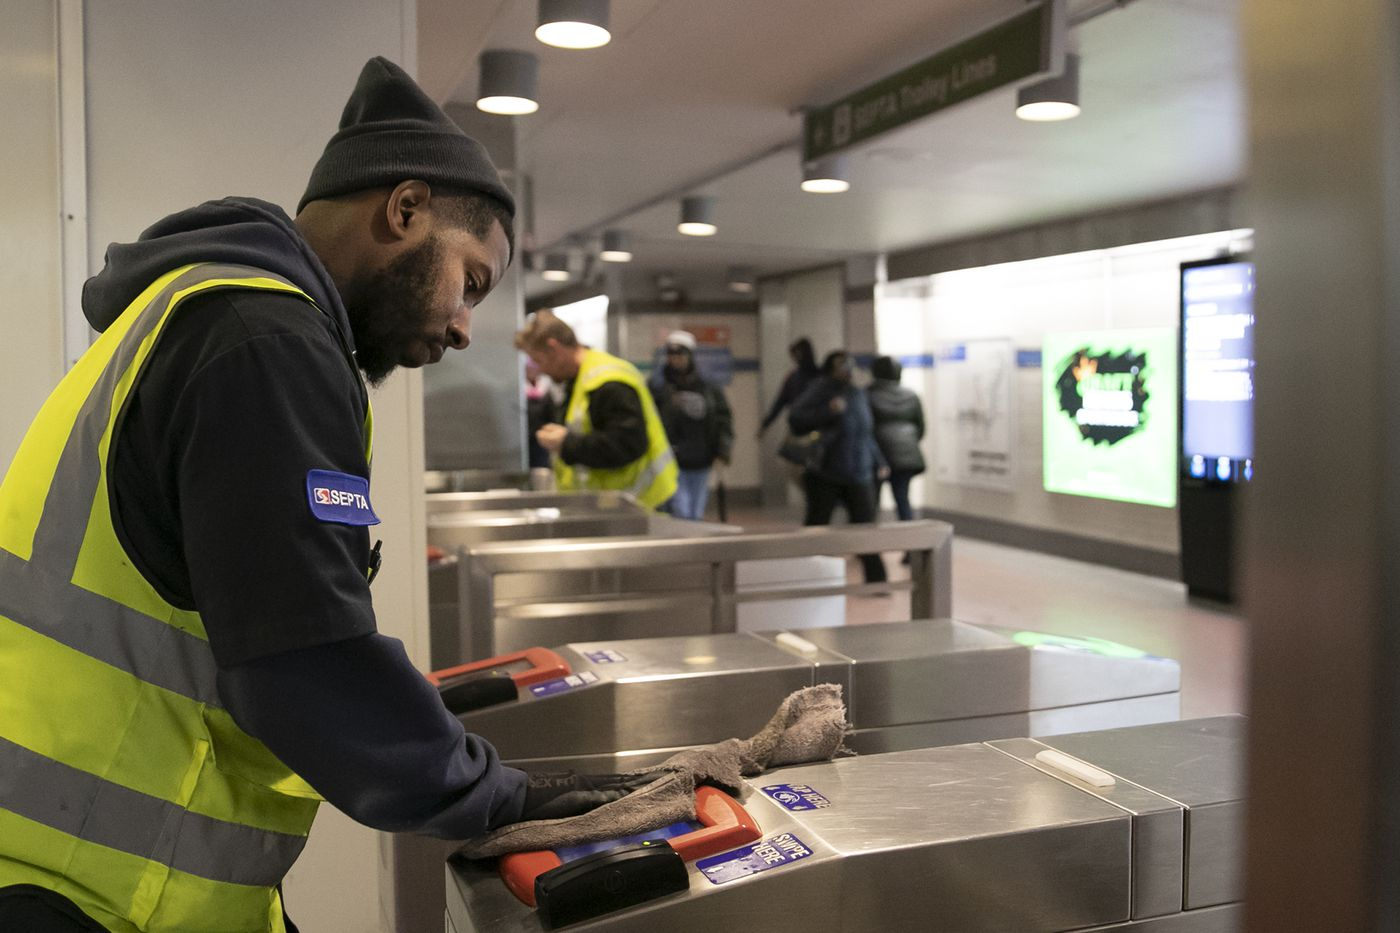 John Mathis, a SEPTA employee, disinfects the turnstiles at the 15th Street Station on the Broad Street Line.